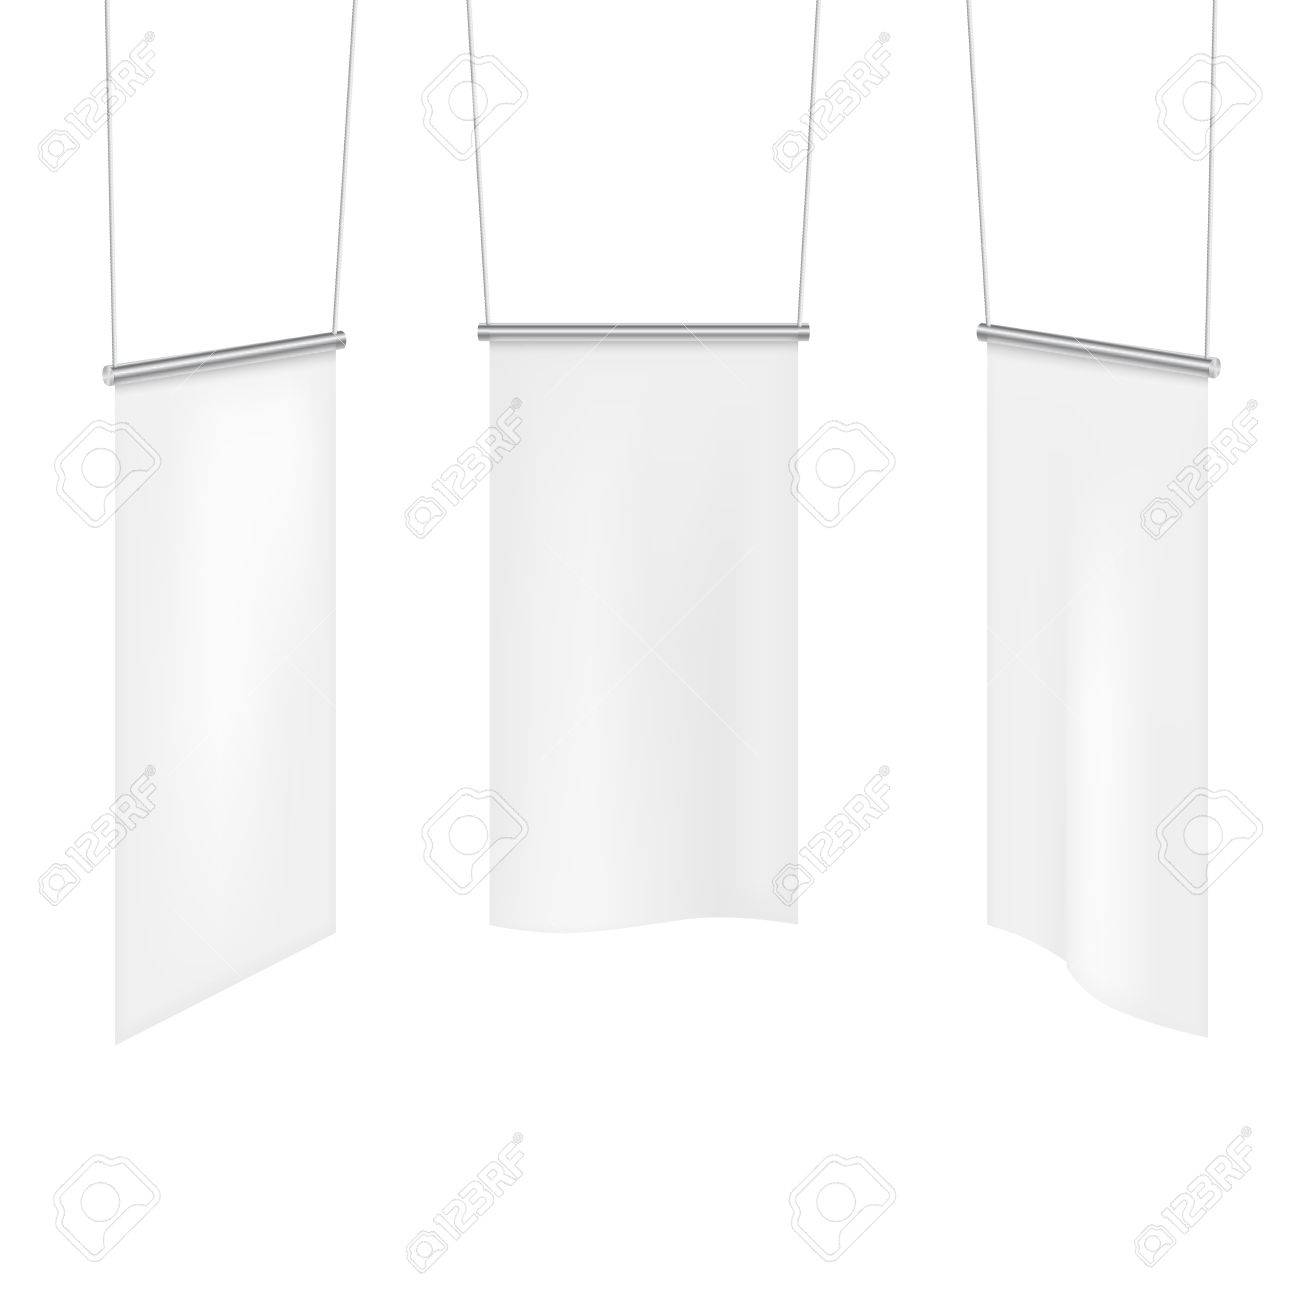 White textile banners folds template set  Canvas and blank banner,